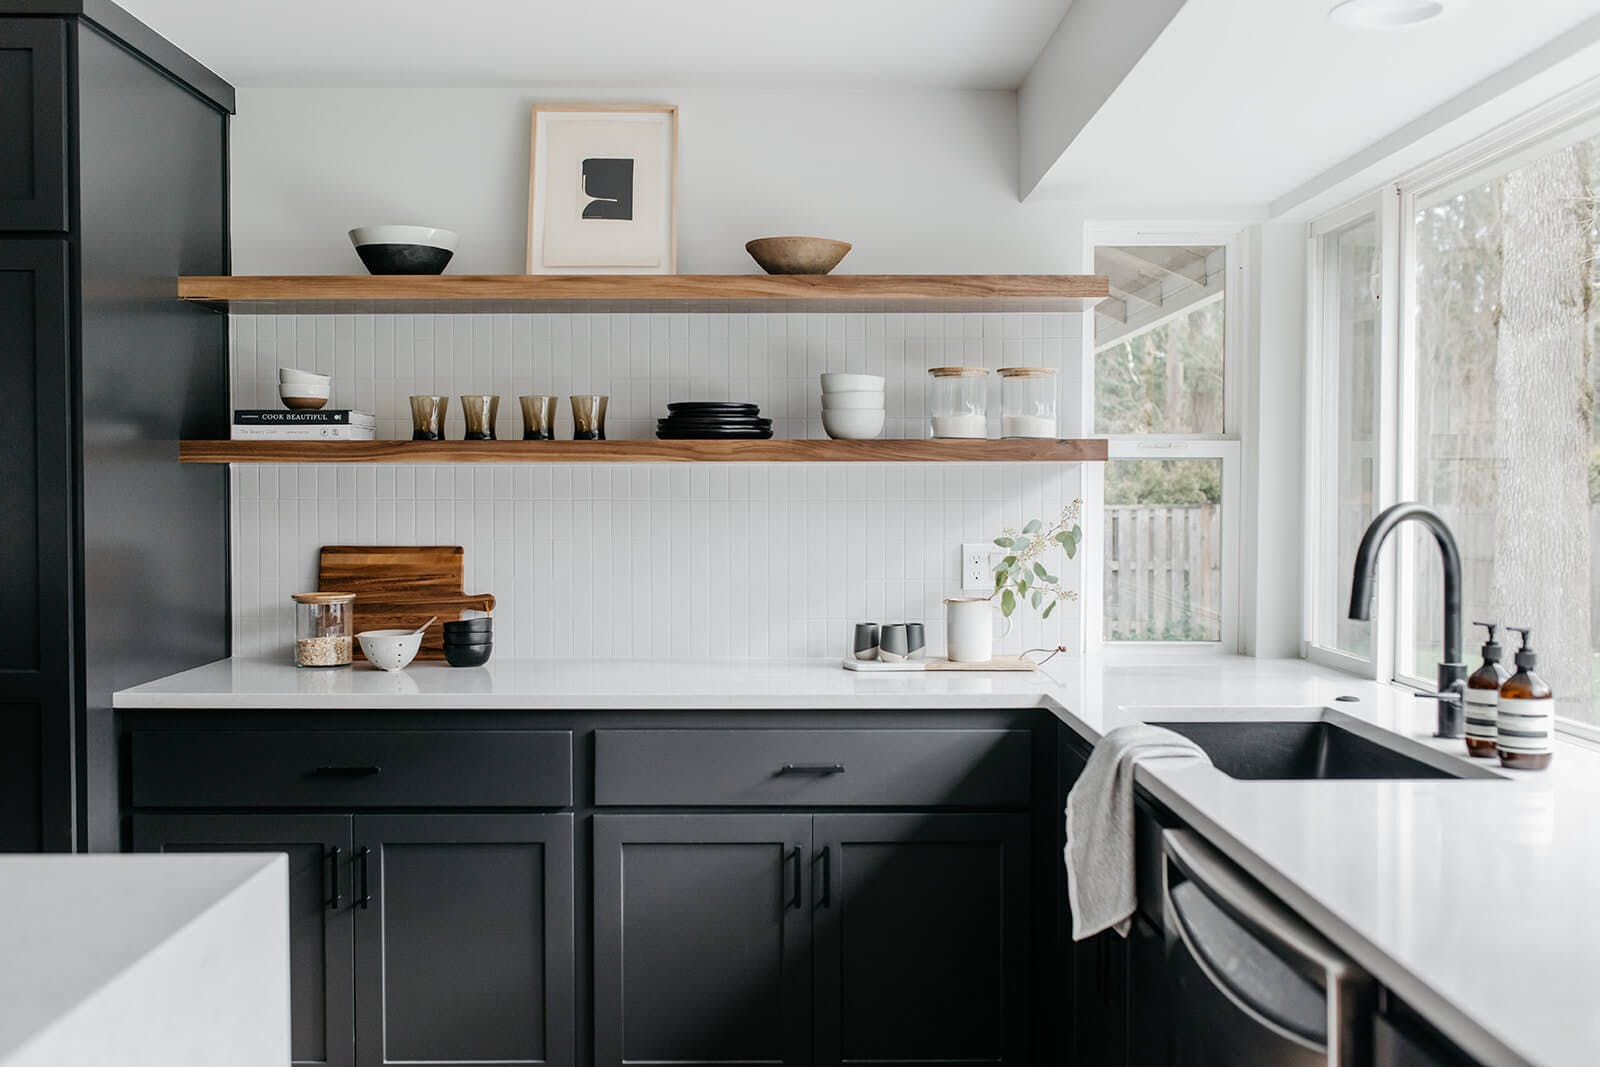 Kitchen sink and shelves